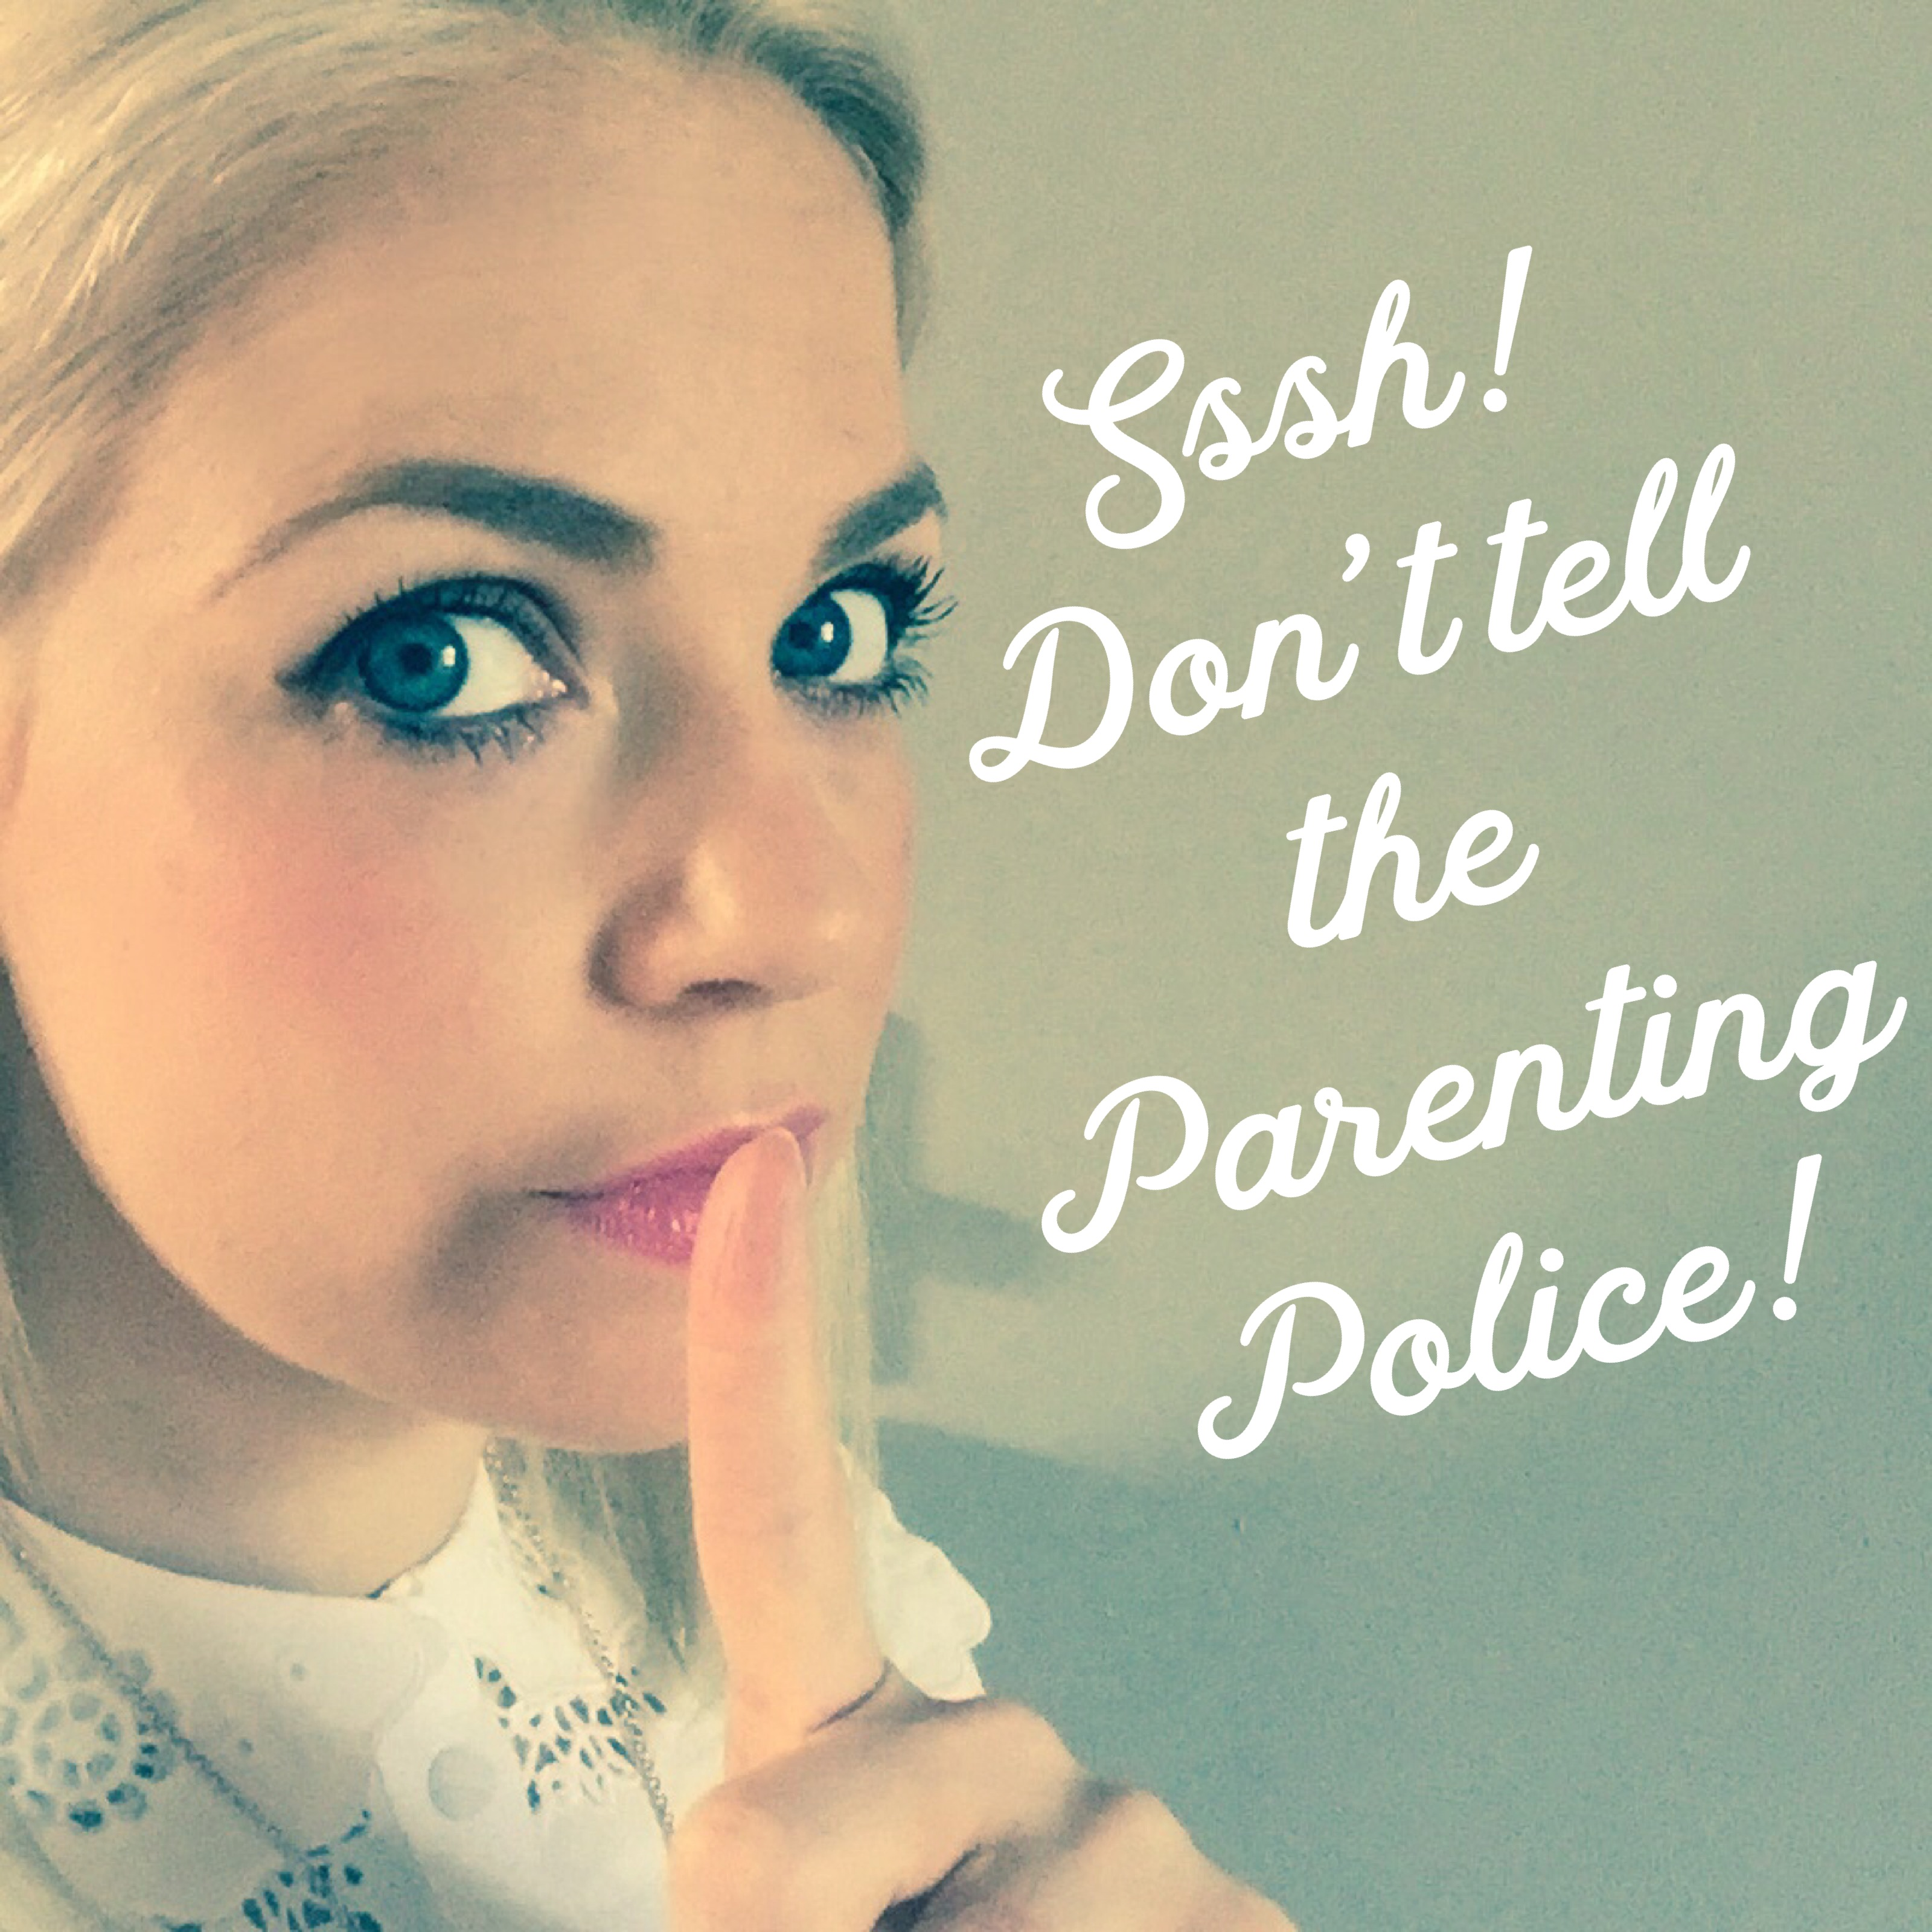 STOP! Parenting Police!